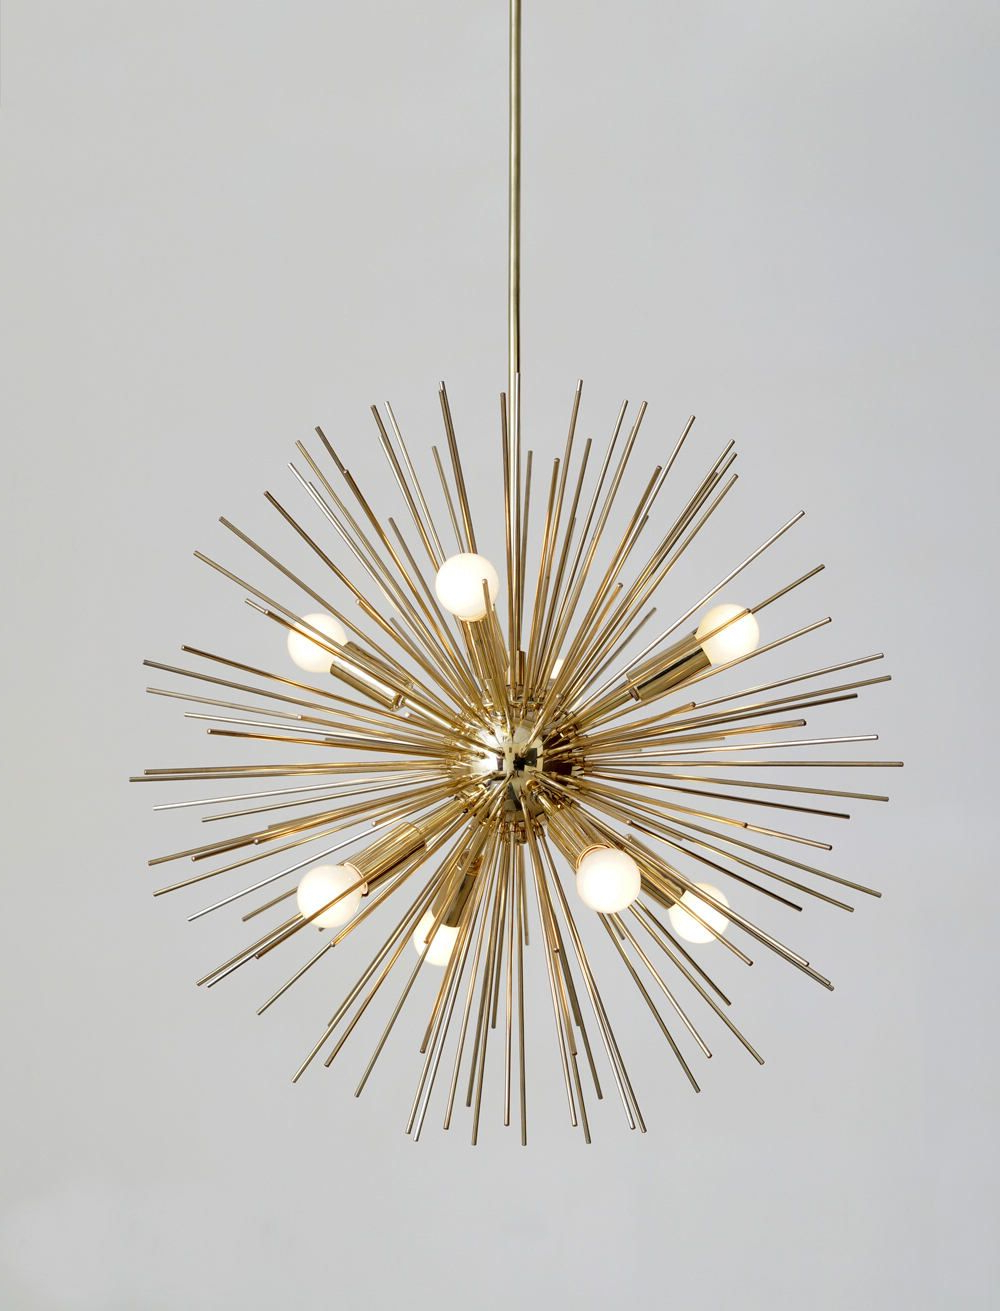 2020 Pinsoul Your Homepatricia N. On ☆ Lighting ☆ In With Asher 12 Light Sputnik Chandeliers (Gallery 18 of 20)